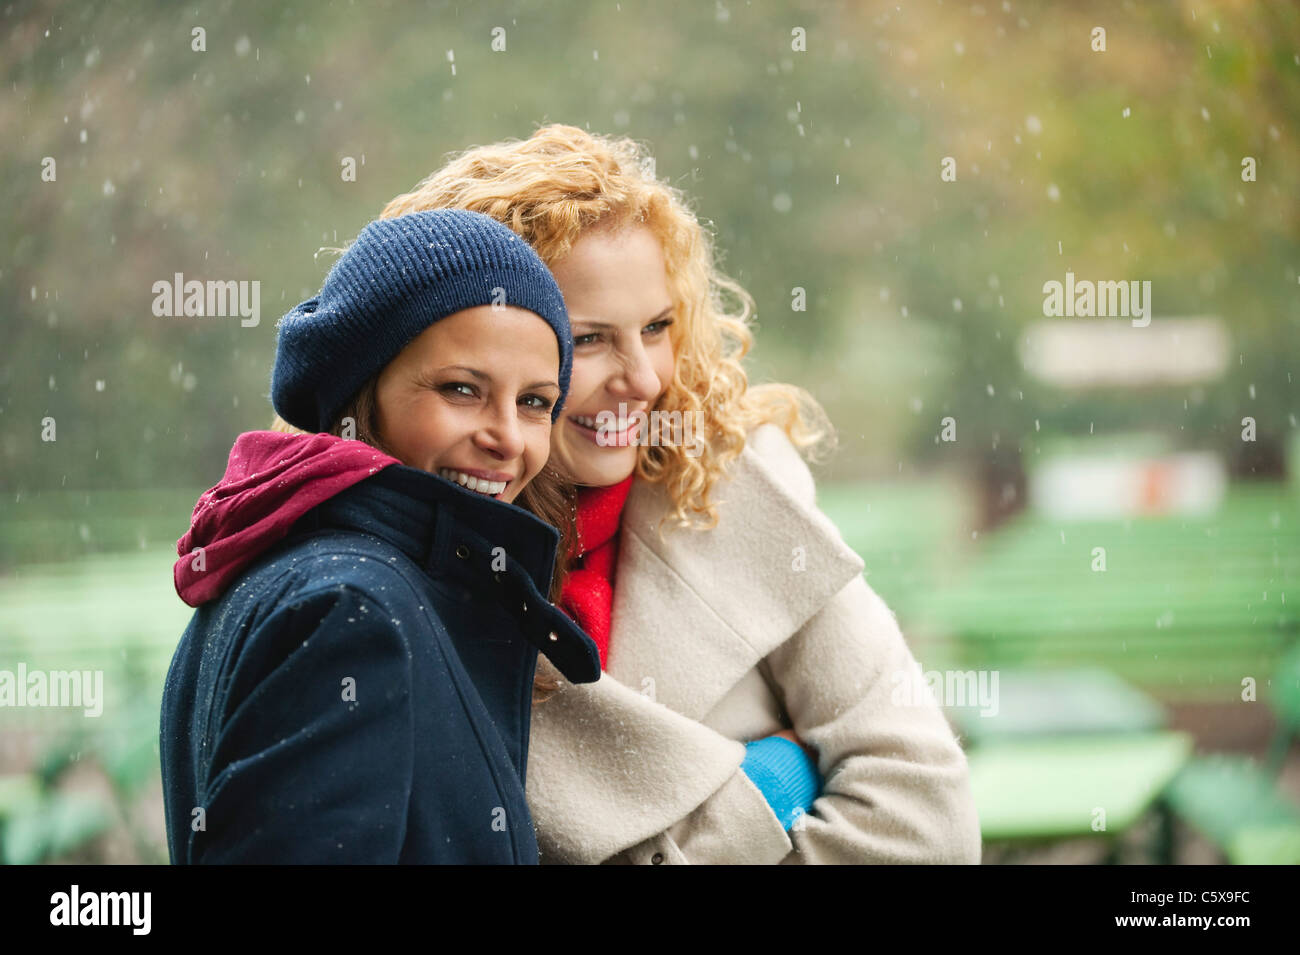 Germany, Bavaria, English Garden, Two women in beer garden, laughing, portrait - Stock Image